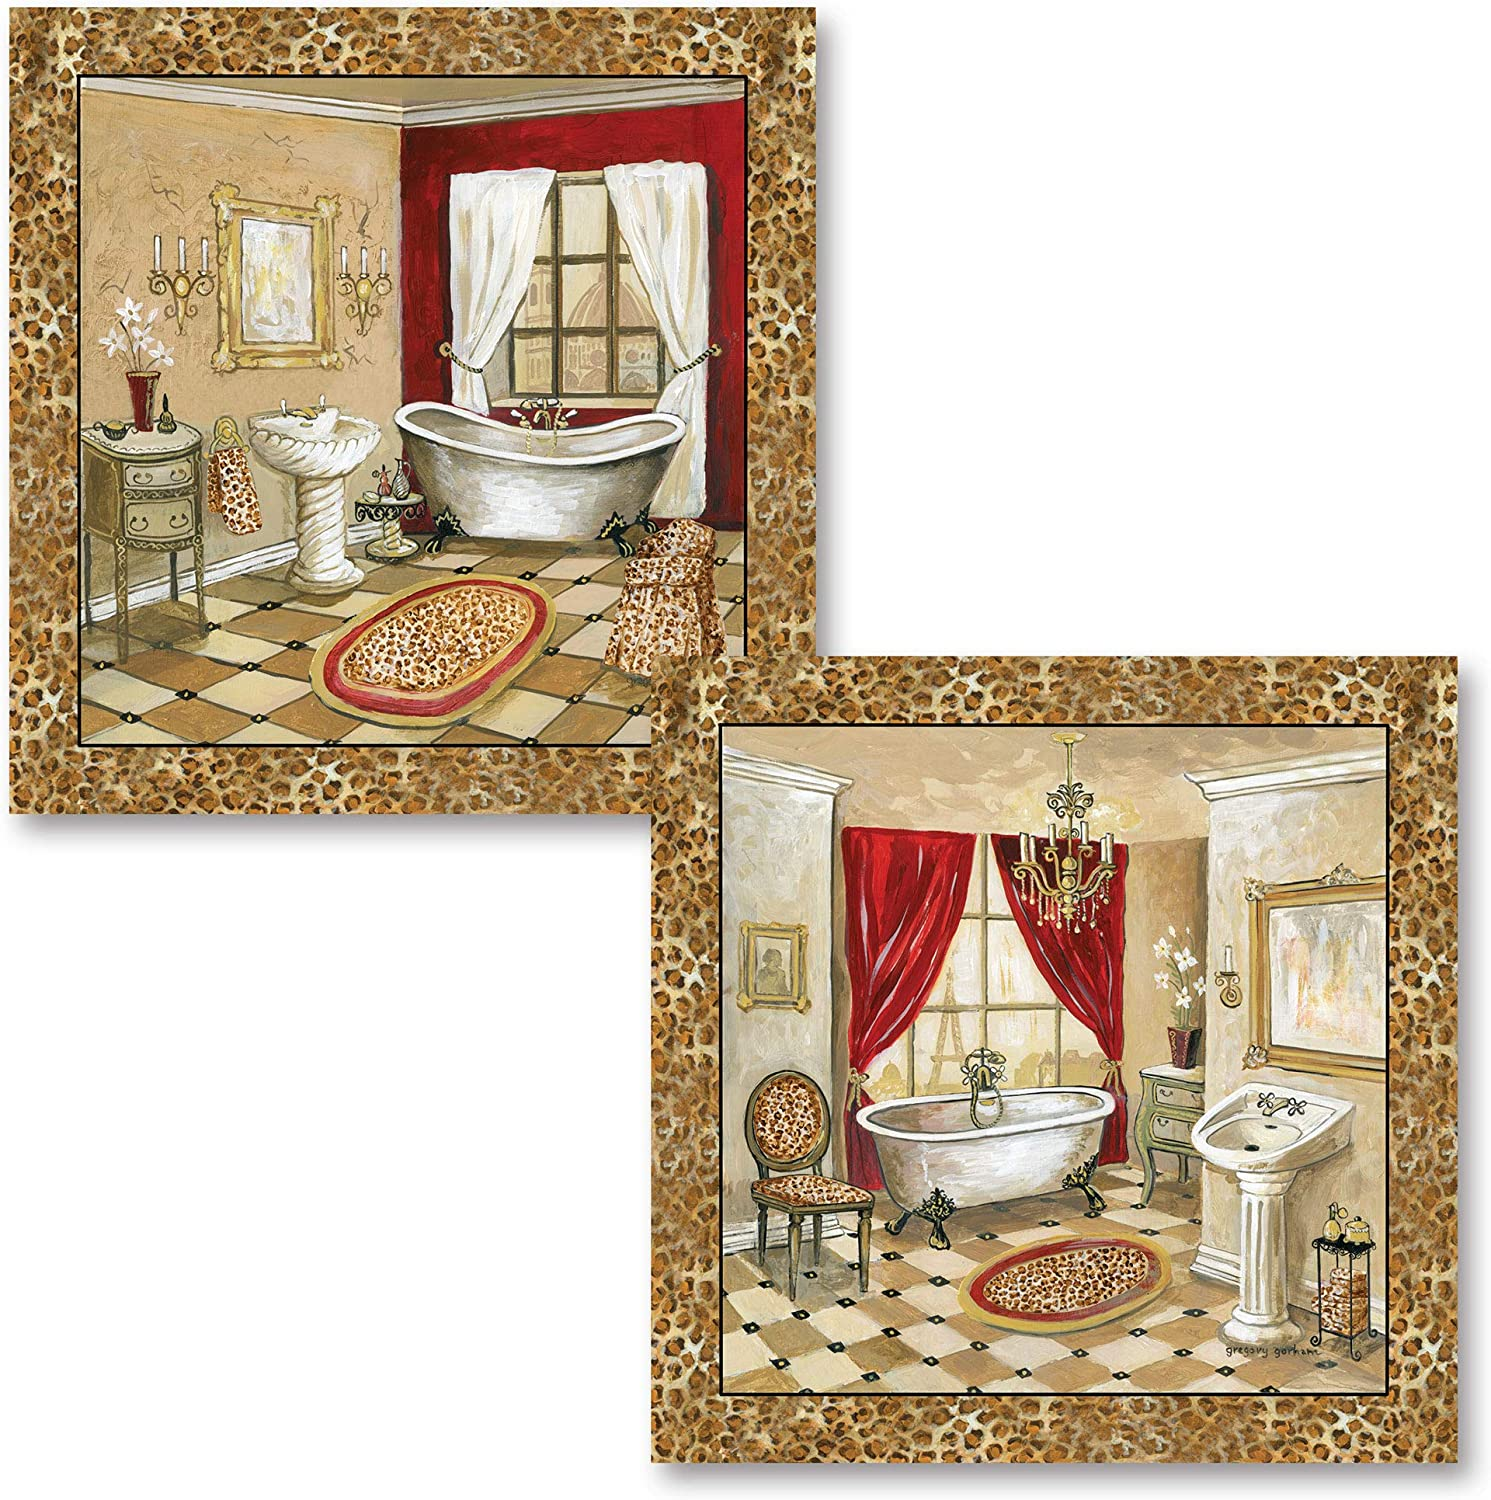 French Inspired Leopard Print Florentine Clawfoot Bathtub and Sink Set by Gregory Gorham; Two 12X12 UNFRAMED Paper Posters (Border Is Part Of Print)